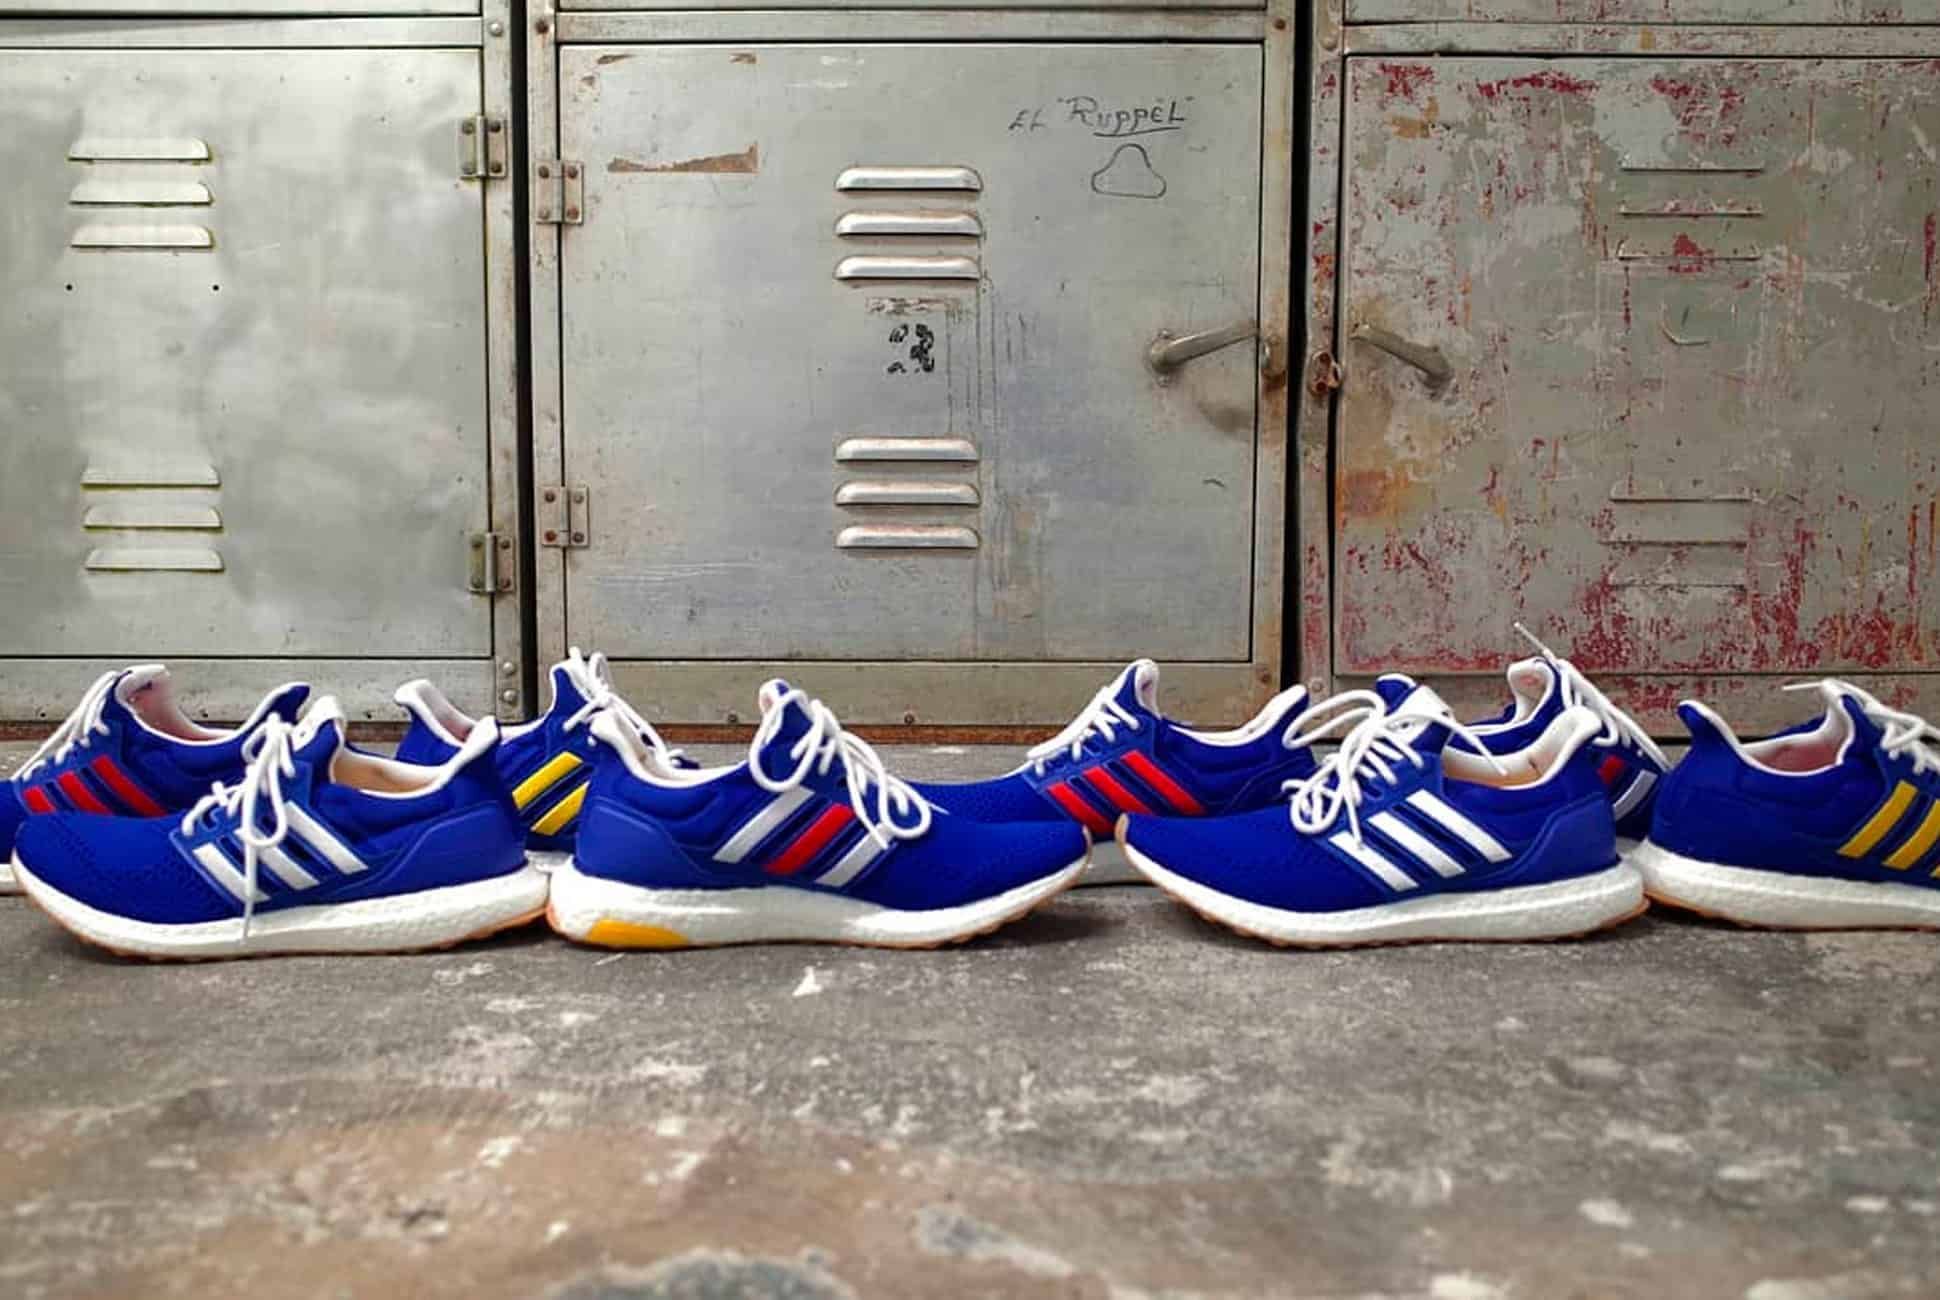 Adidas and Engineered Garments Are